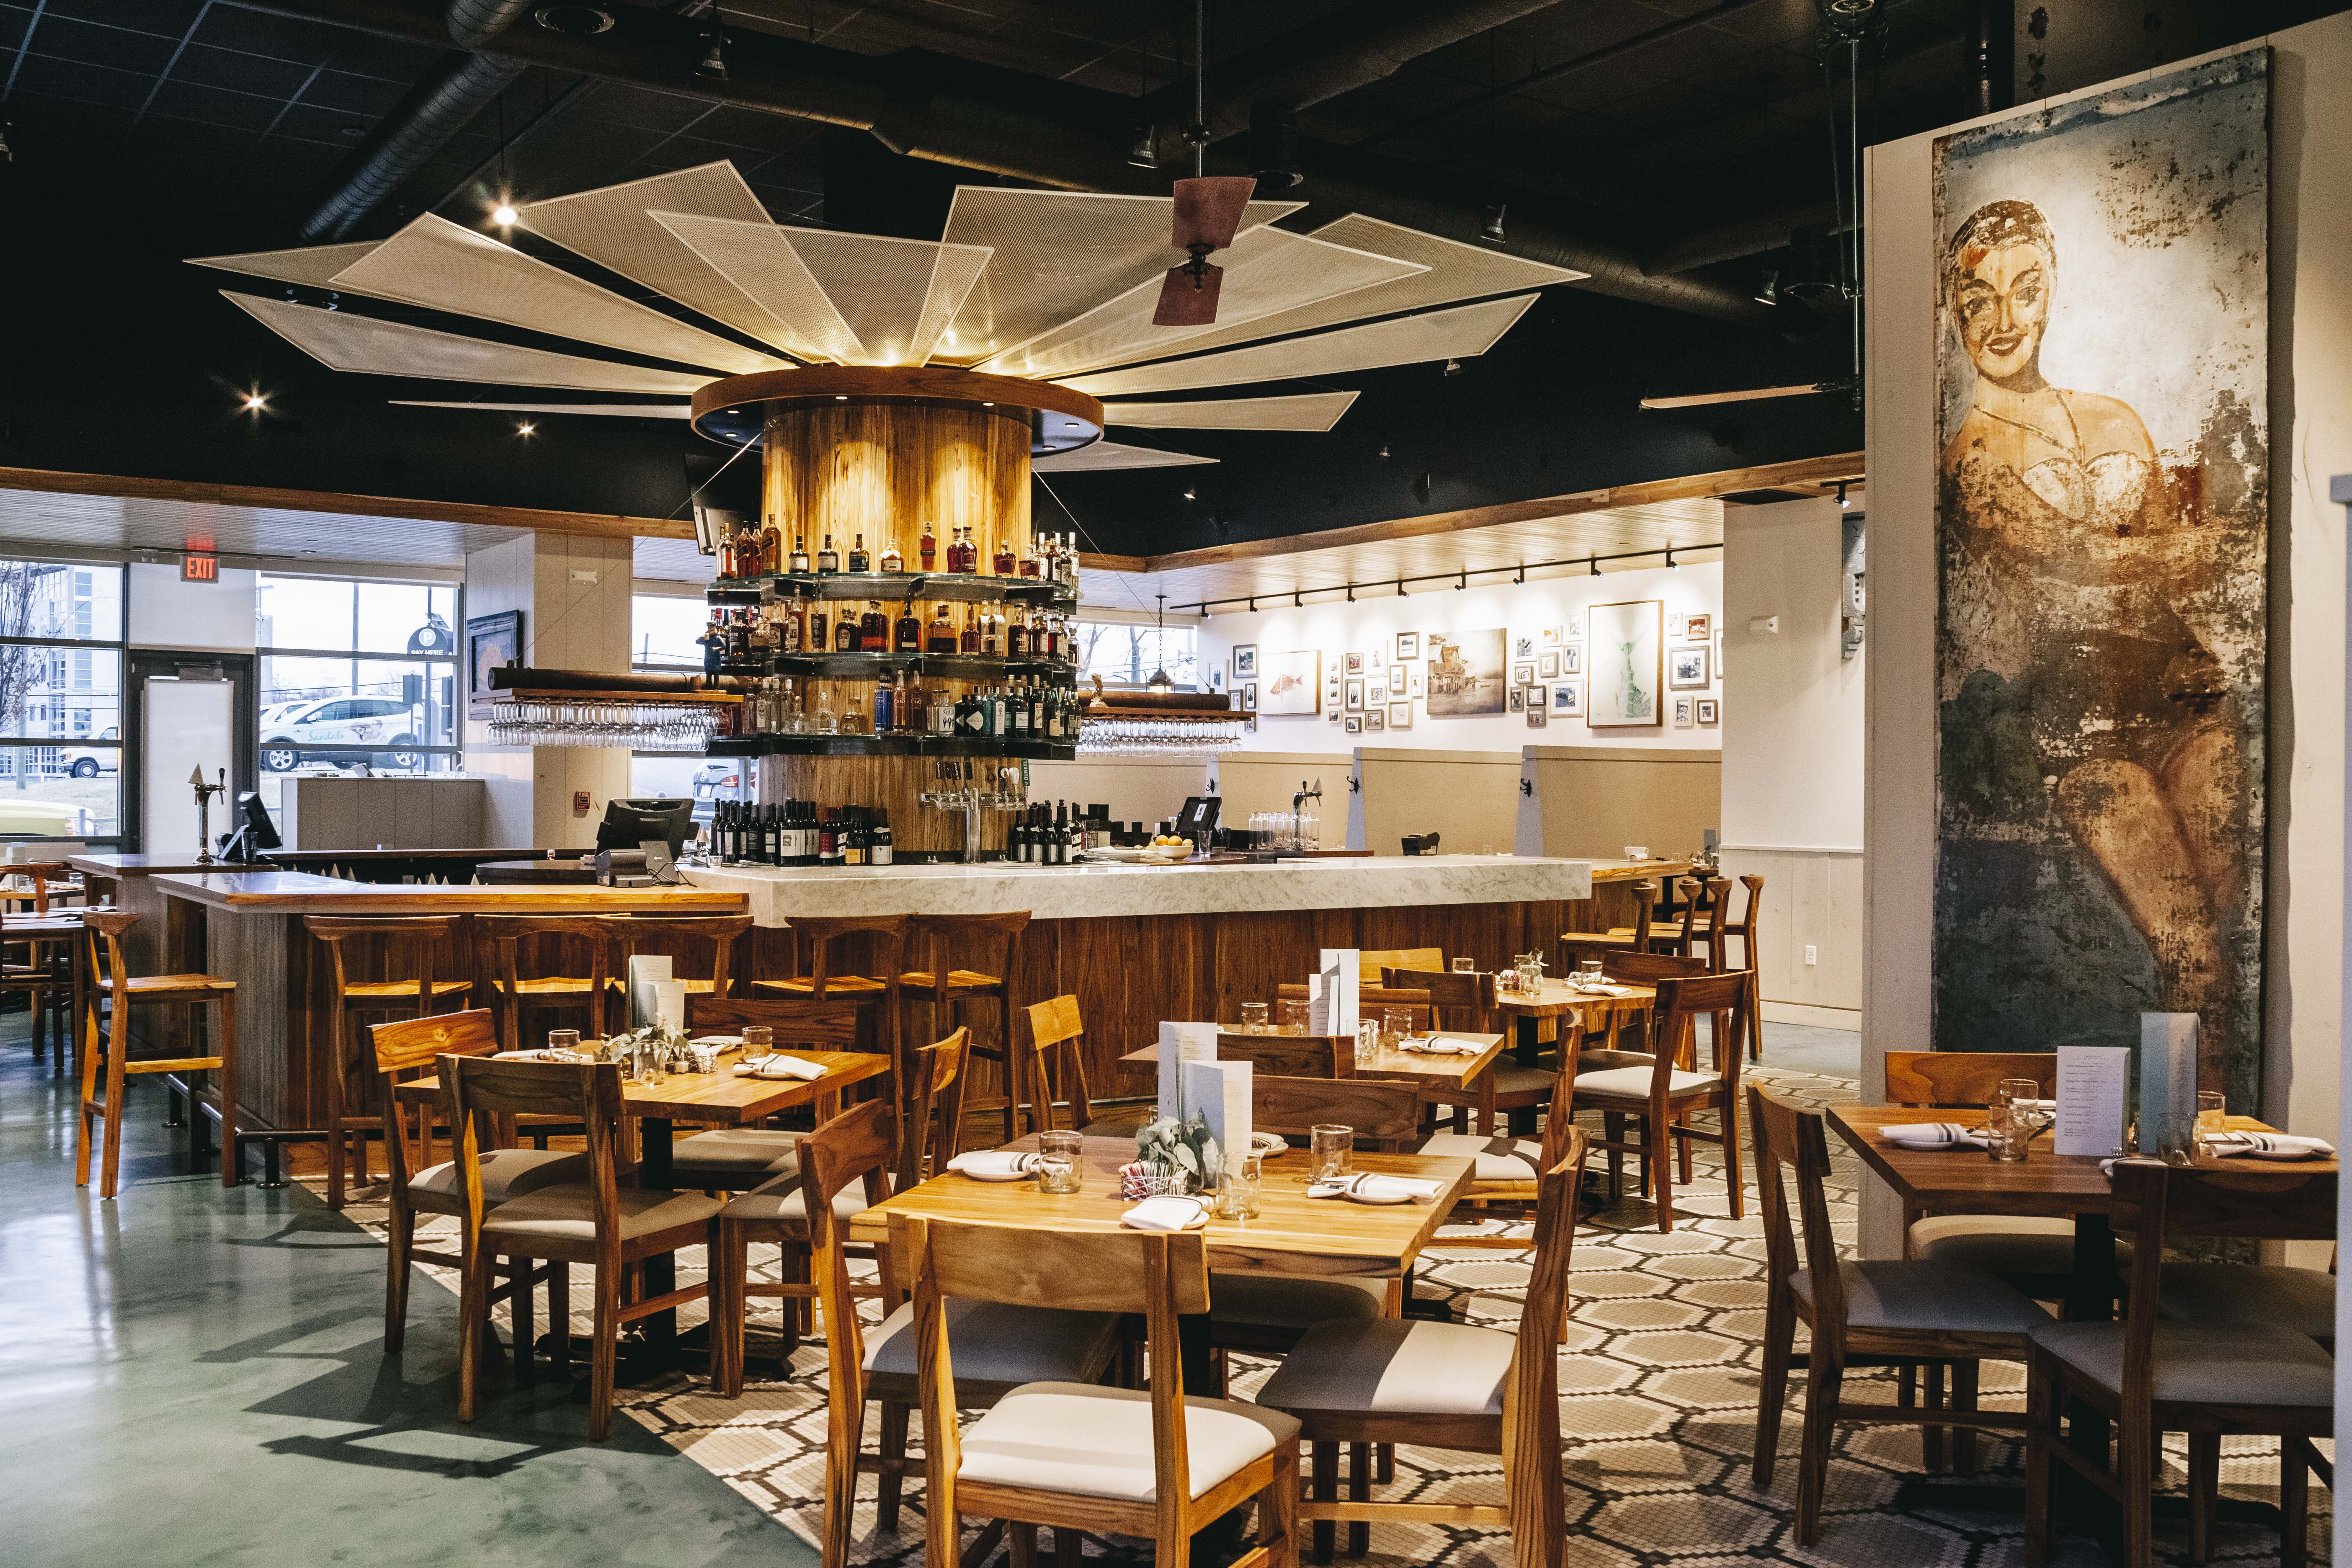 Barcelona wine bar is bringing spanish tapas to the